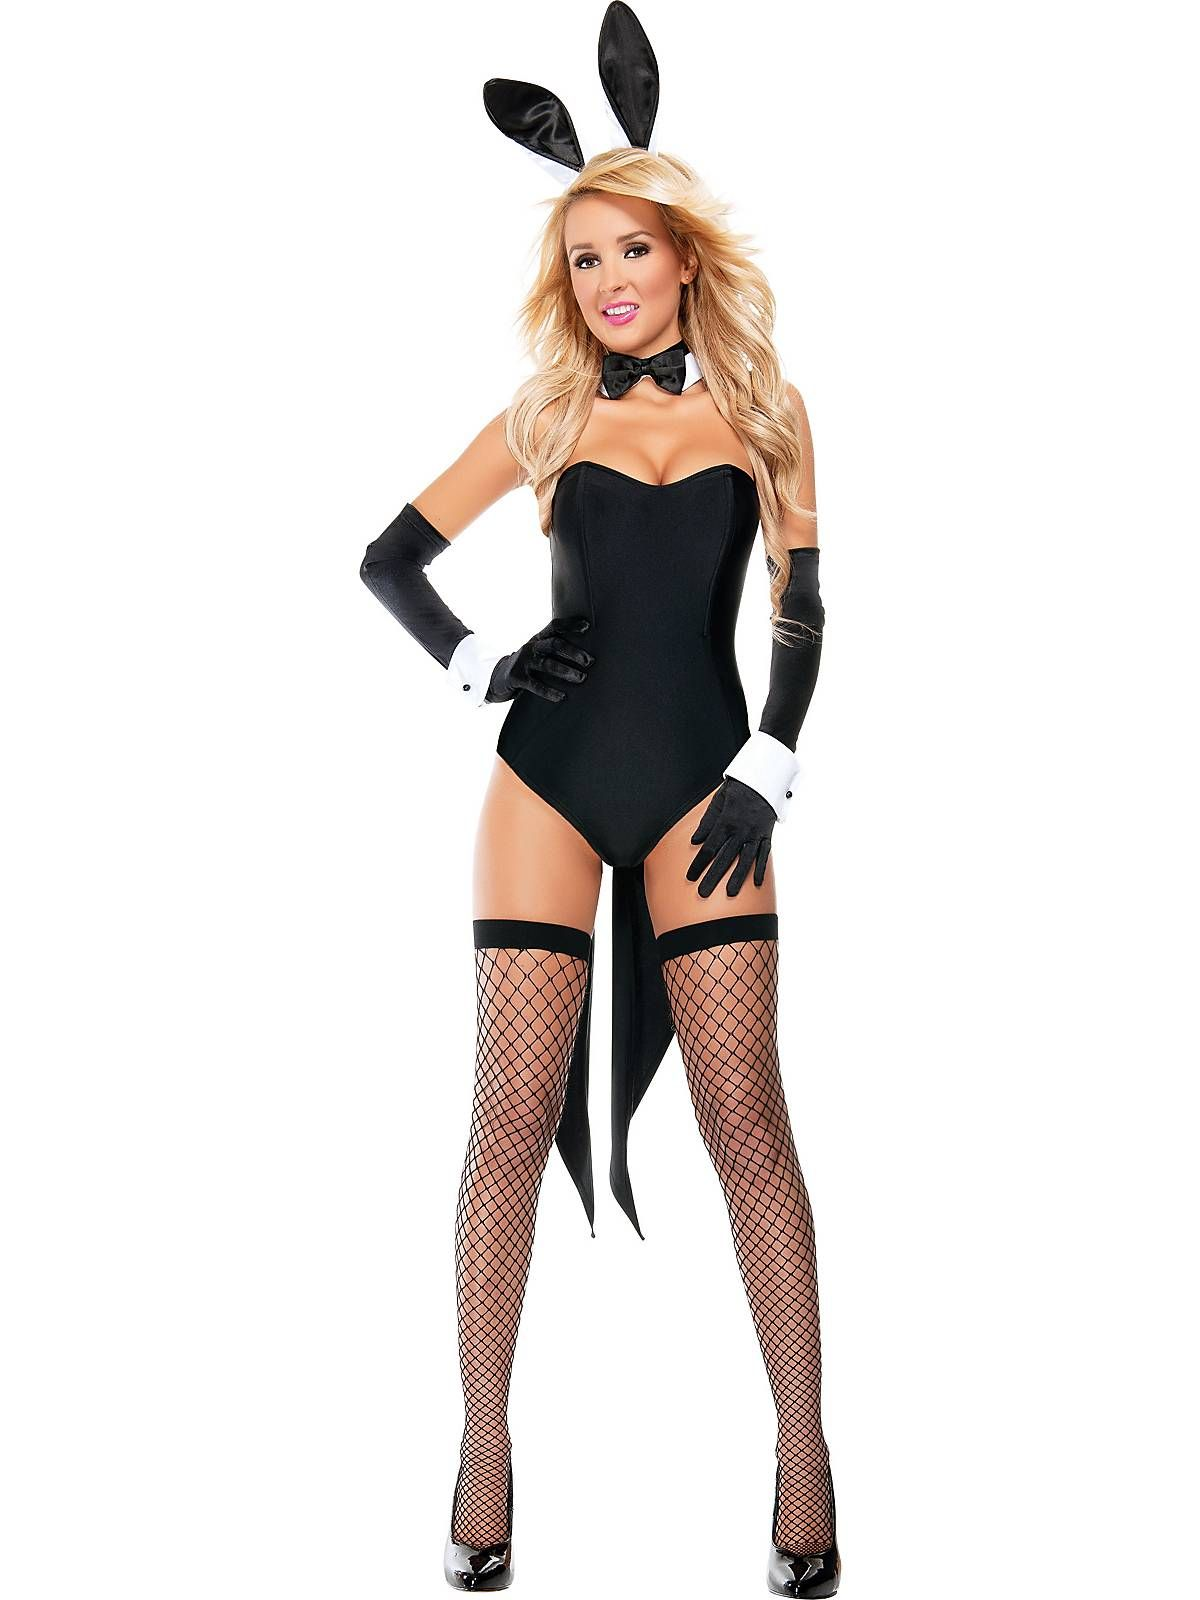 302387a9f Introduce some sex appeal to your look with this Sexy Naughty Nights Bunny  Costume.